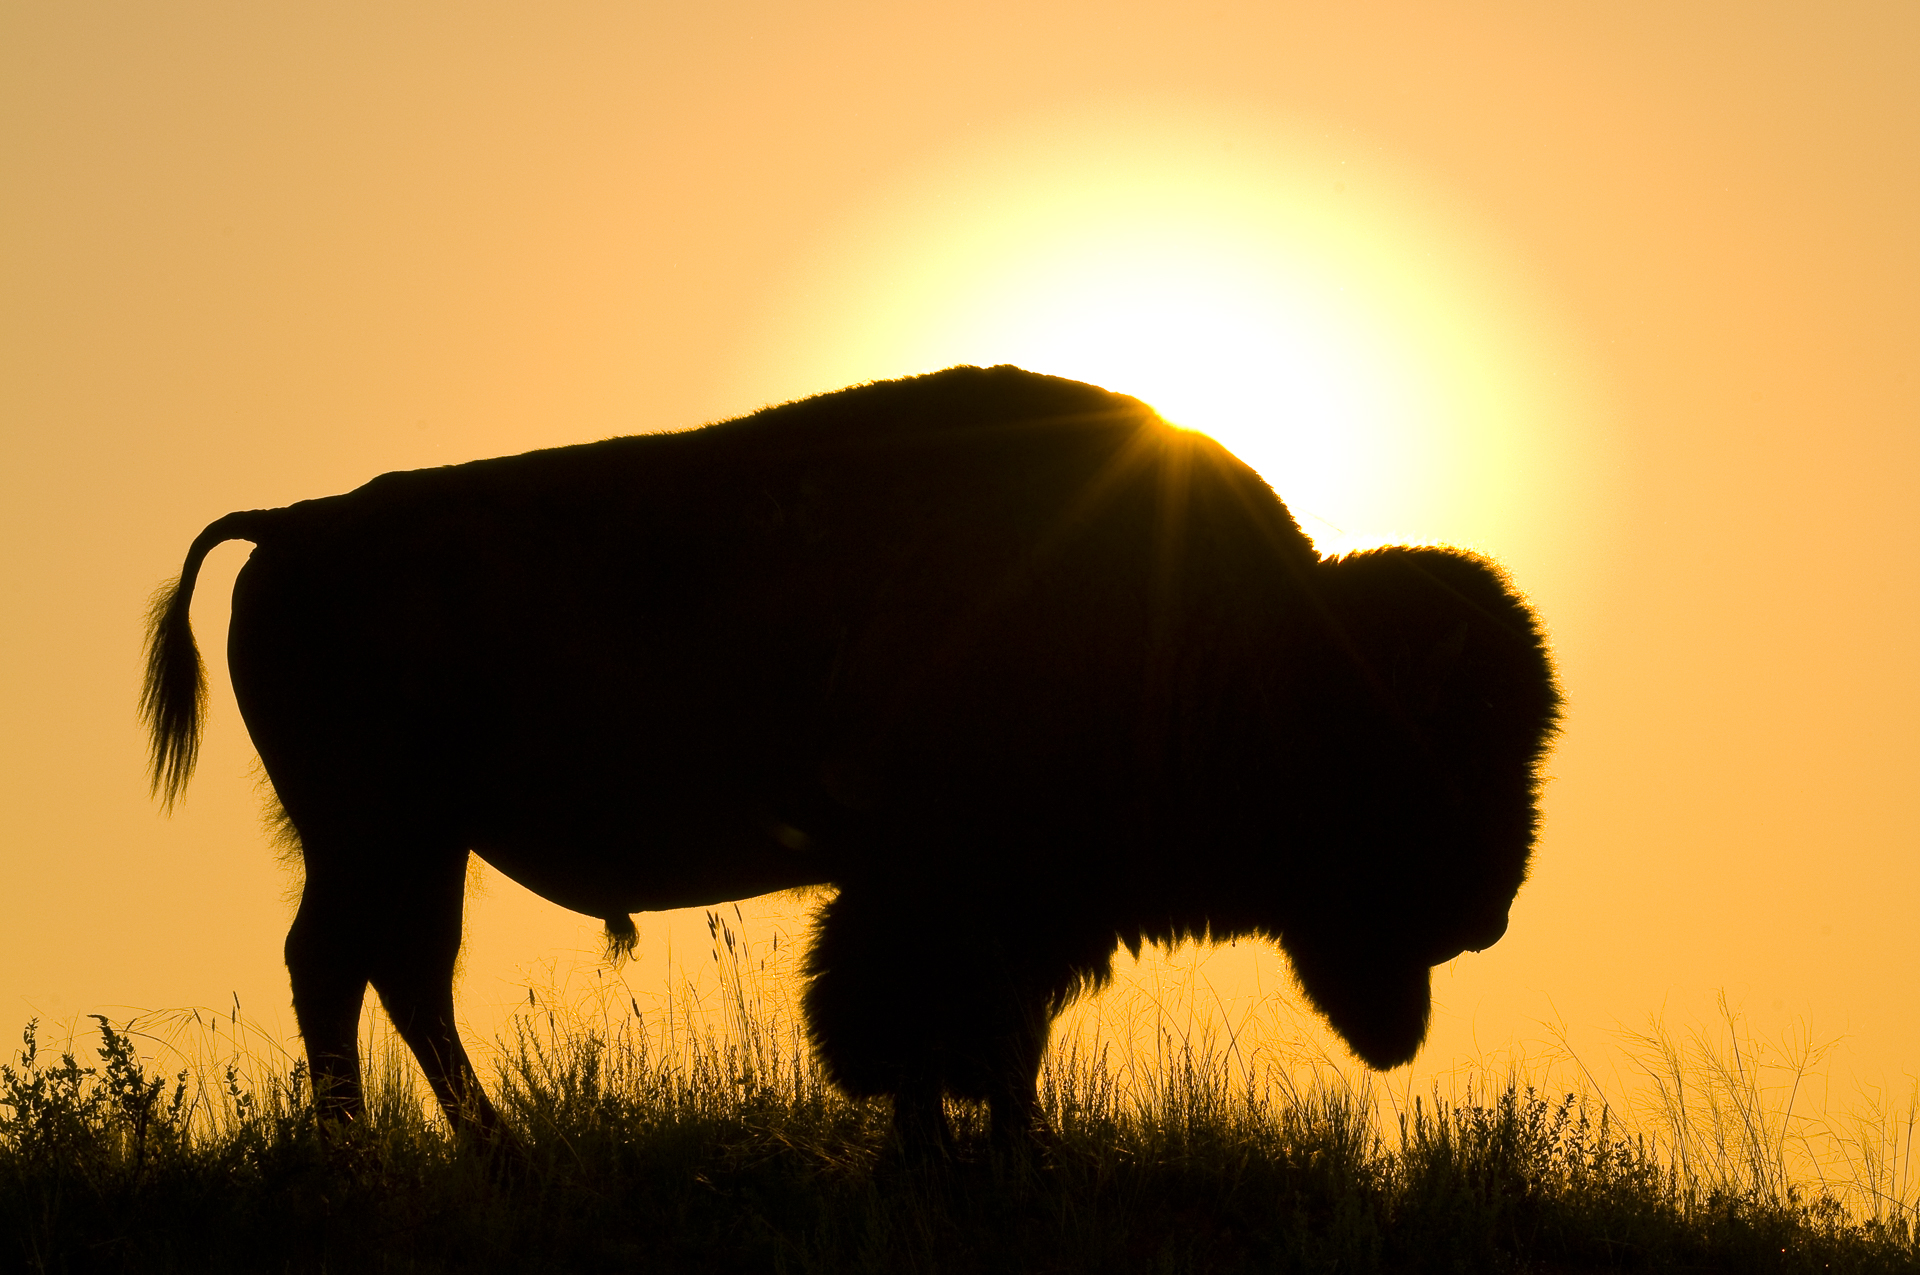 Iconic Wild West: bull bison